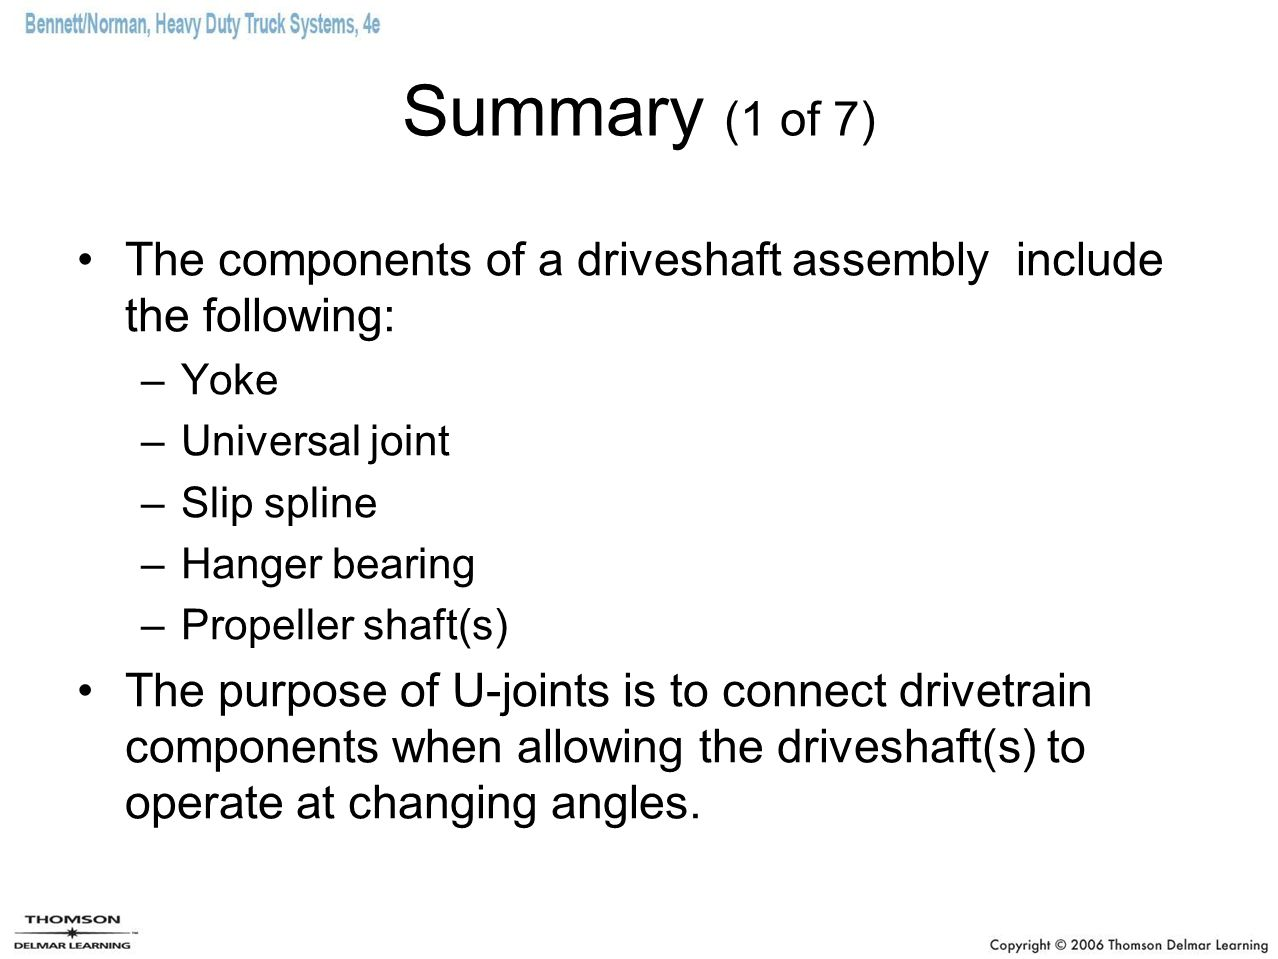 Summary (1 of 7) The components of a driveshaft assembly include the following: Yoke. Universal joint.